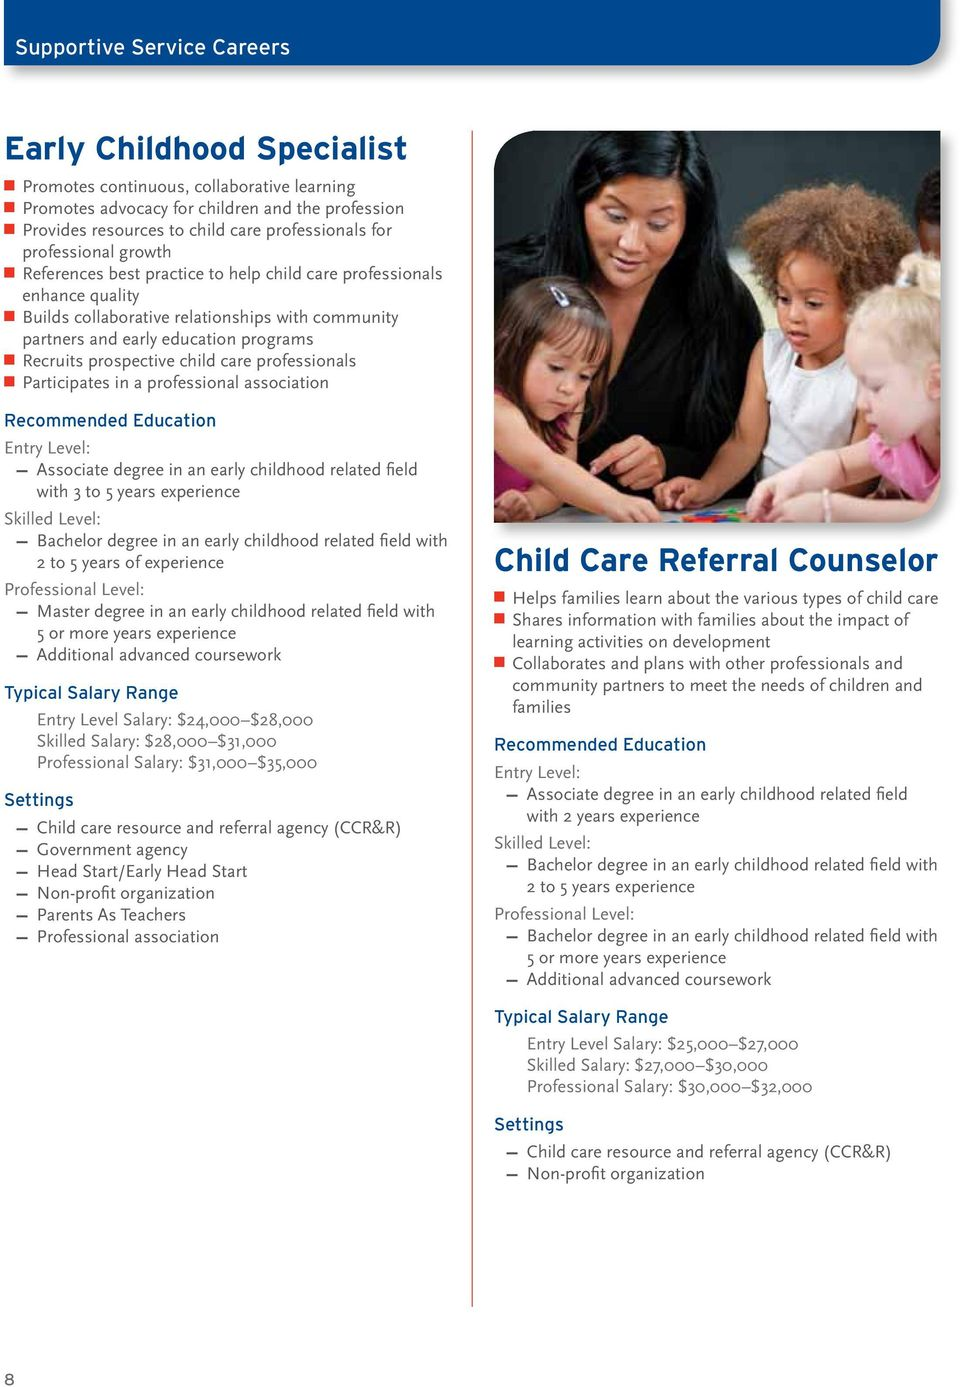 prospective child care professionals Participates in a professional association with 3 to 5 years experience 2 to 5 years of experience Master degree in an early childhood related field with 5 or